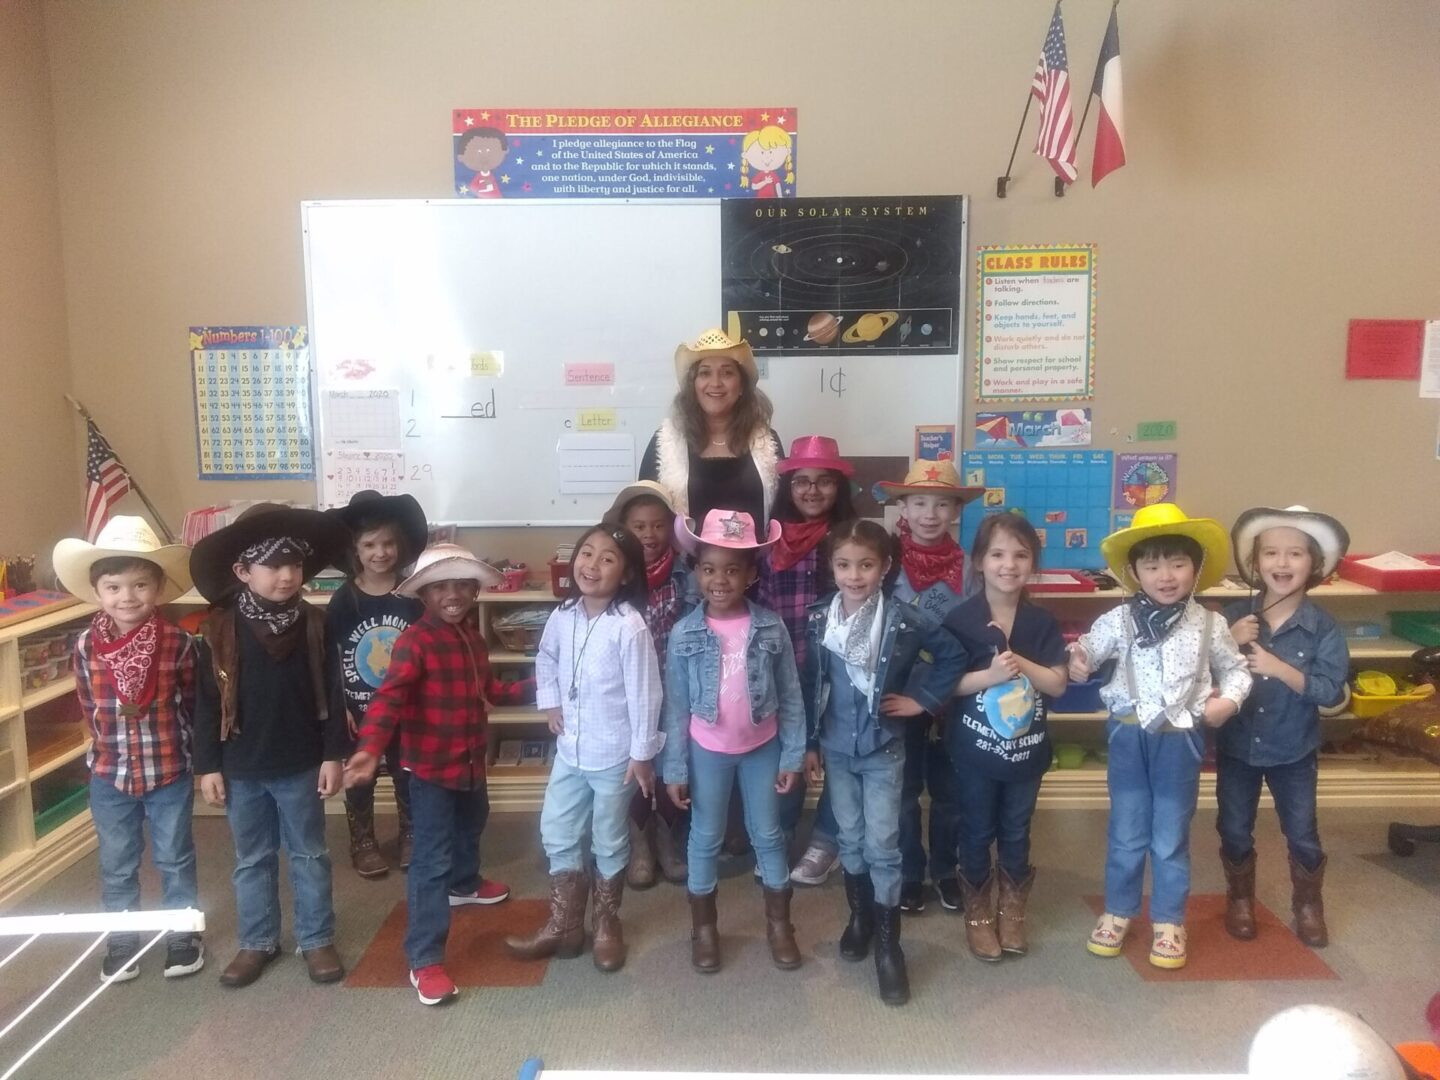 Children wearing cowboy outfits